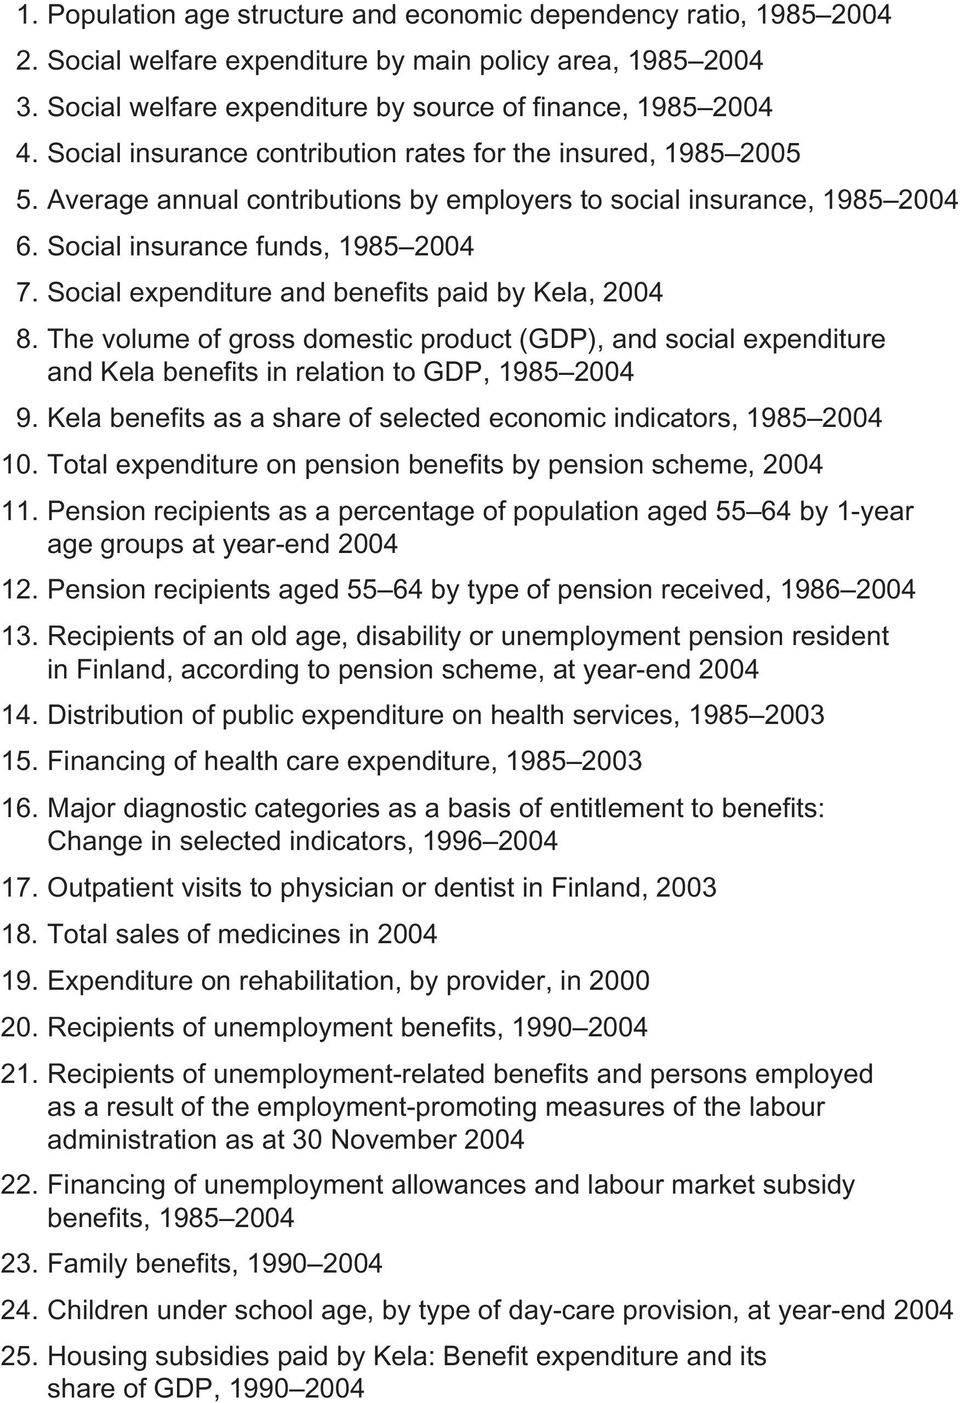 Social expenditure and benefits paid by Kela, 24 8. The volume of gross domestic product (GDP), and social expenditure and Kela benefits in relation to GDP, 1985 24 9.